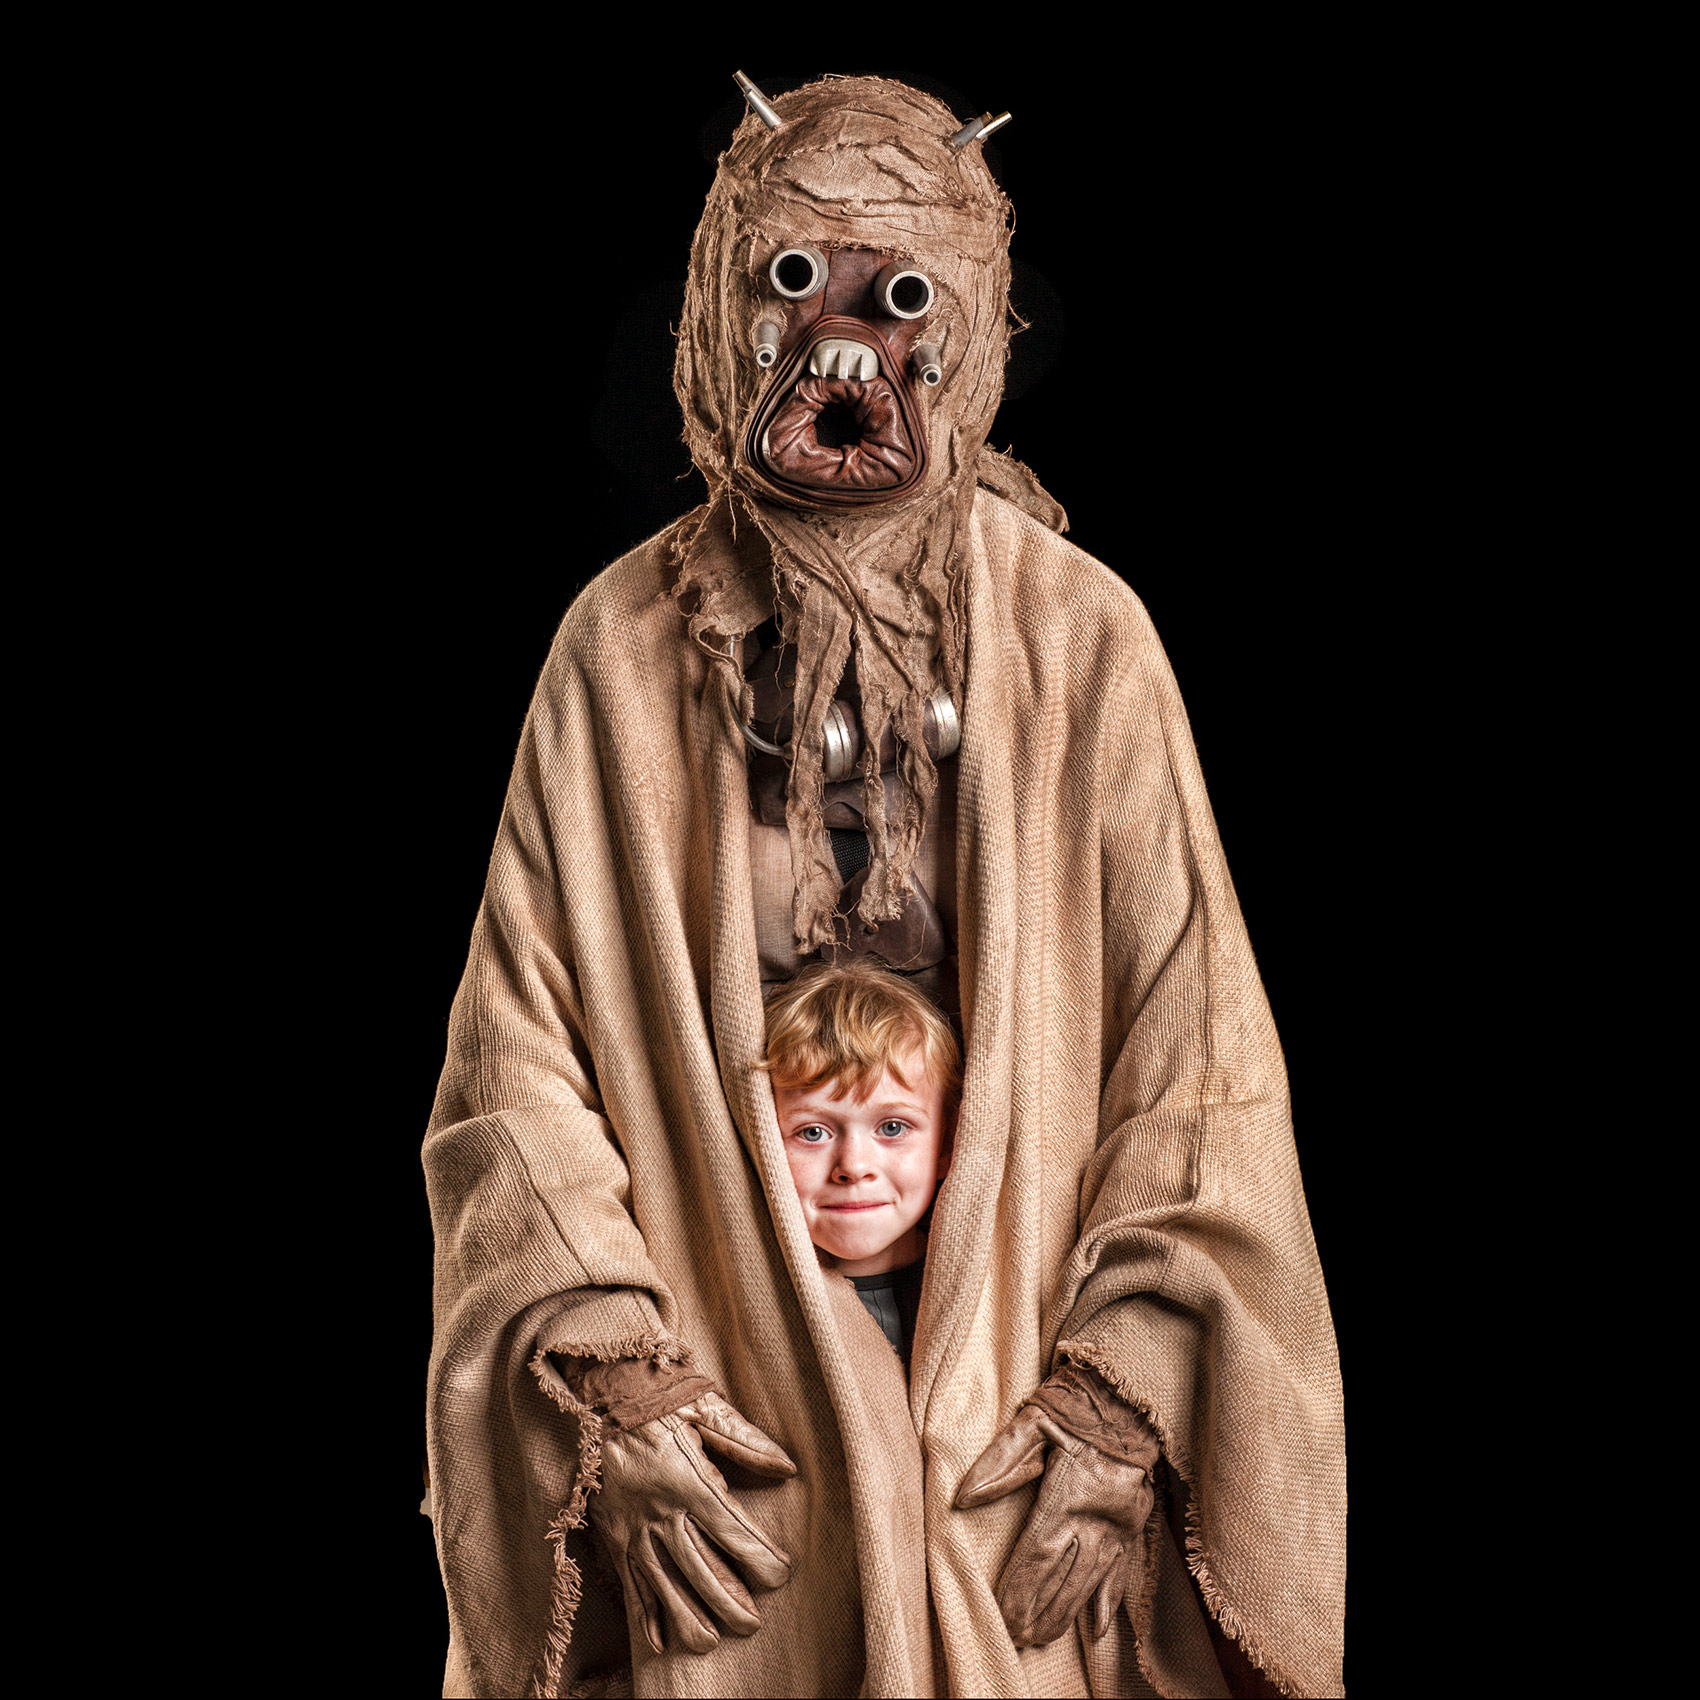 a-boy-and-dad-who-dressed-as-a-tusken-raider-pose-for-a-photo-at-toronto-comicon-high-res-web